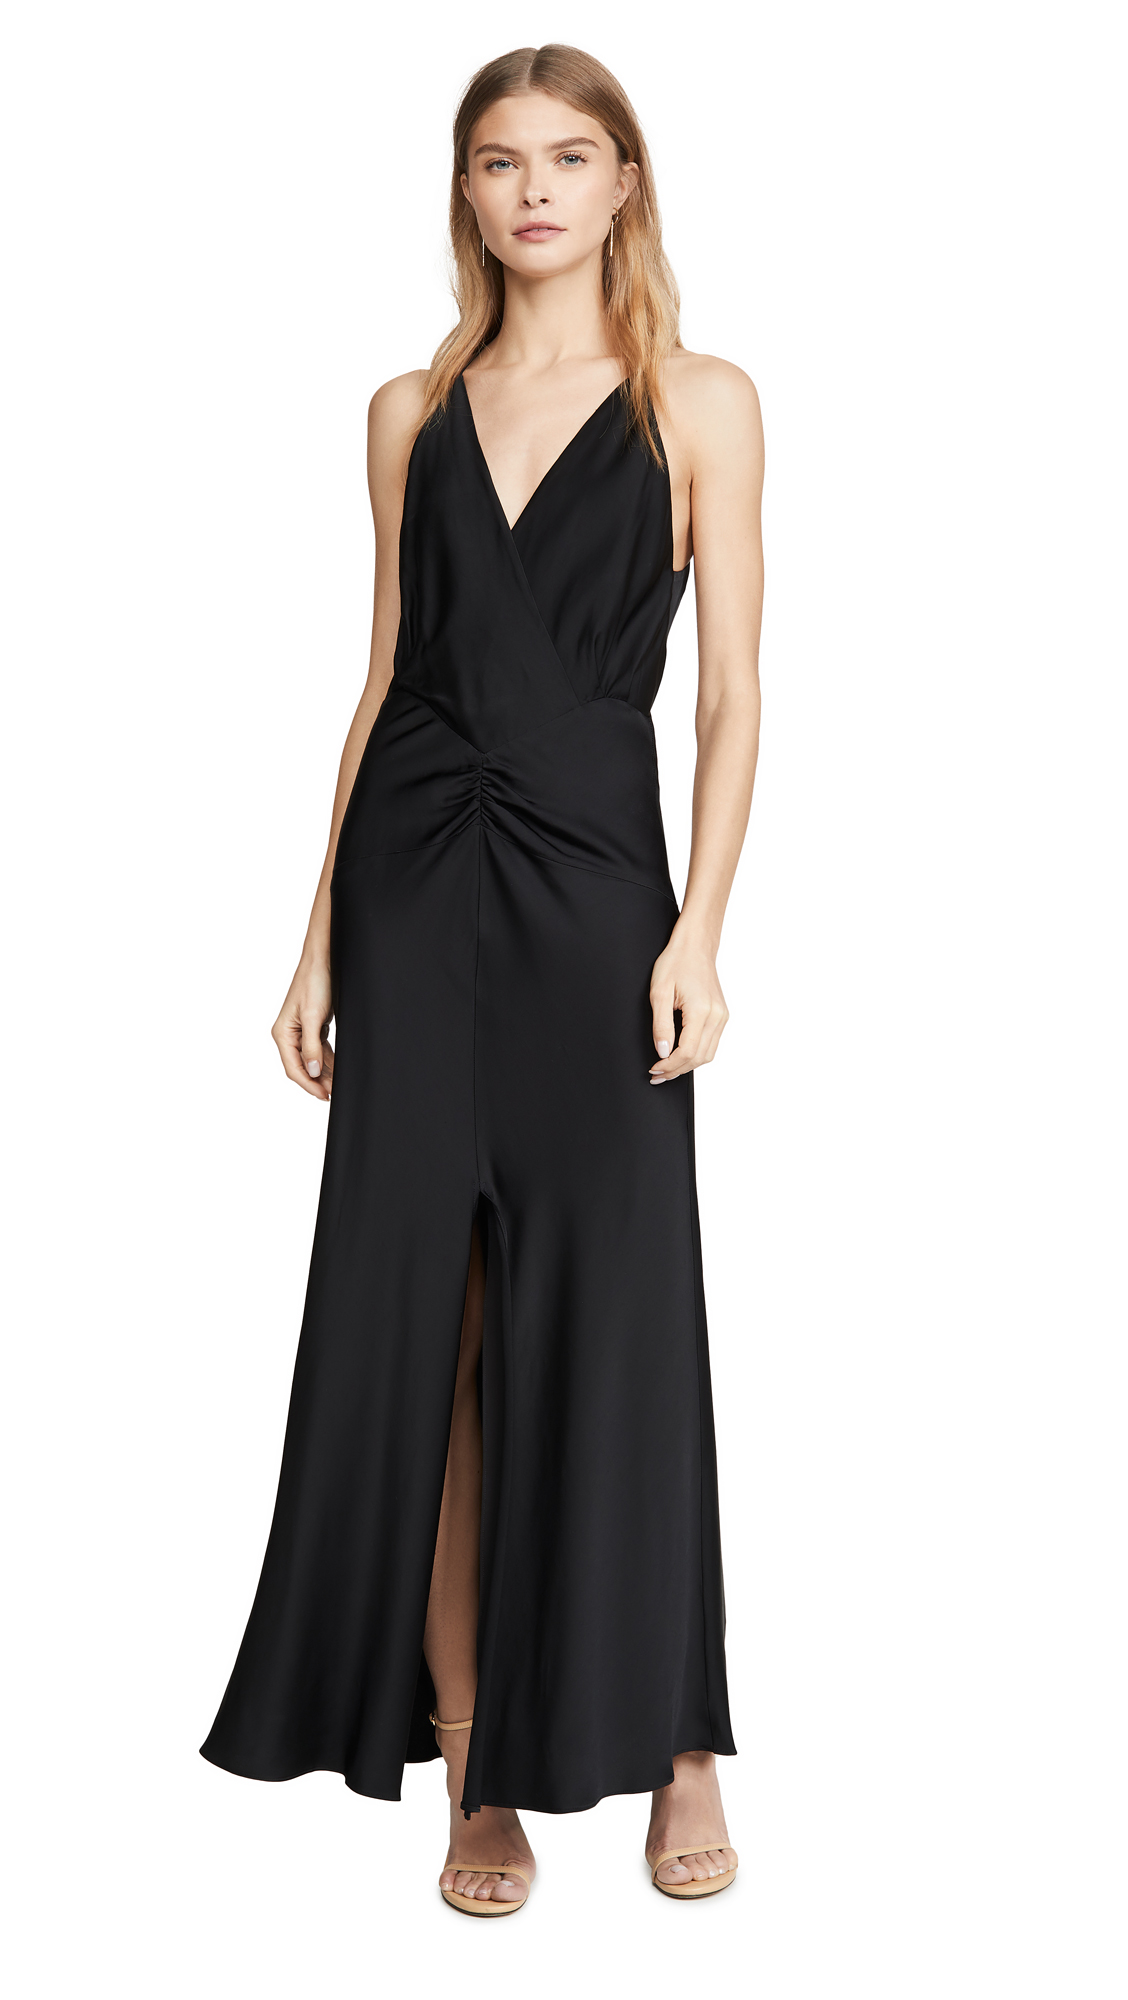 Manning Cartell Australia Day Dreamer Slip Dress - 50% Off Sale